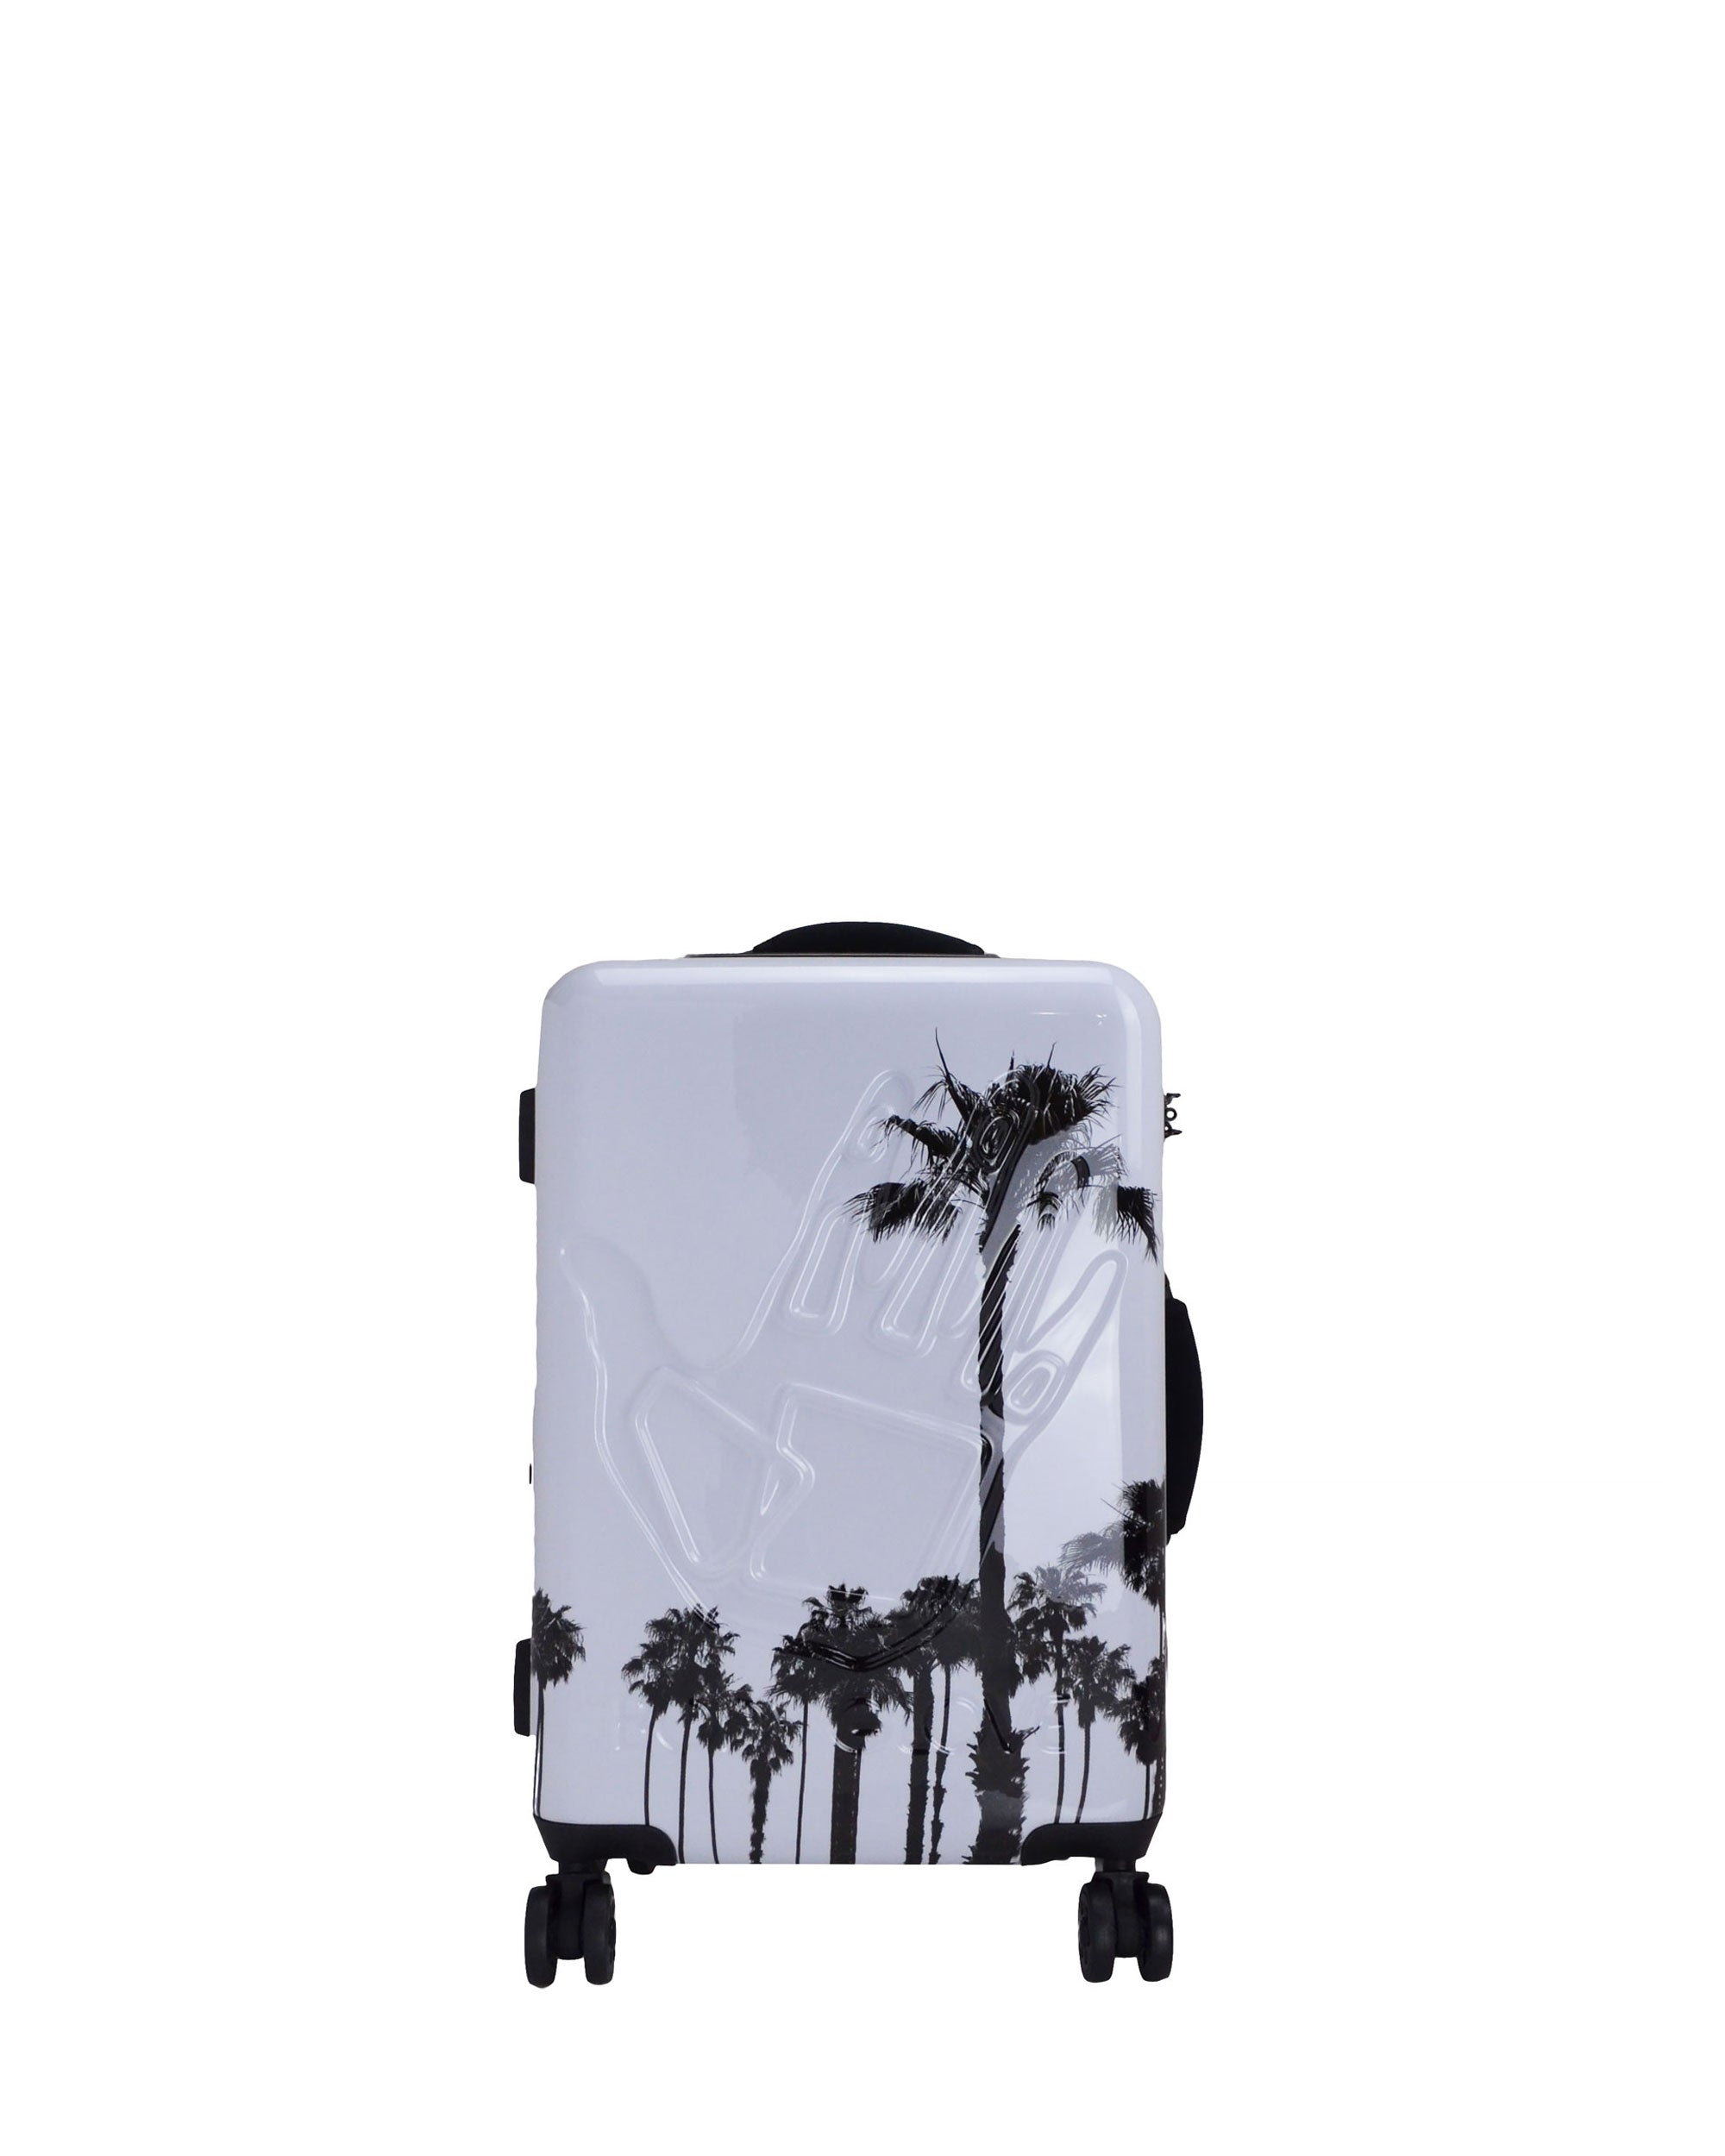 "Redondo 22"" Hardside Luggage - White"